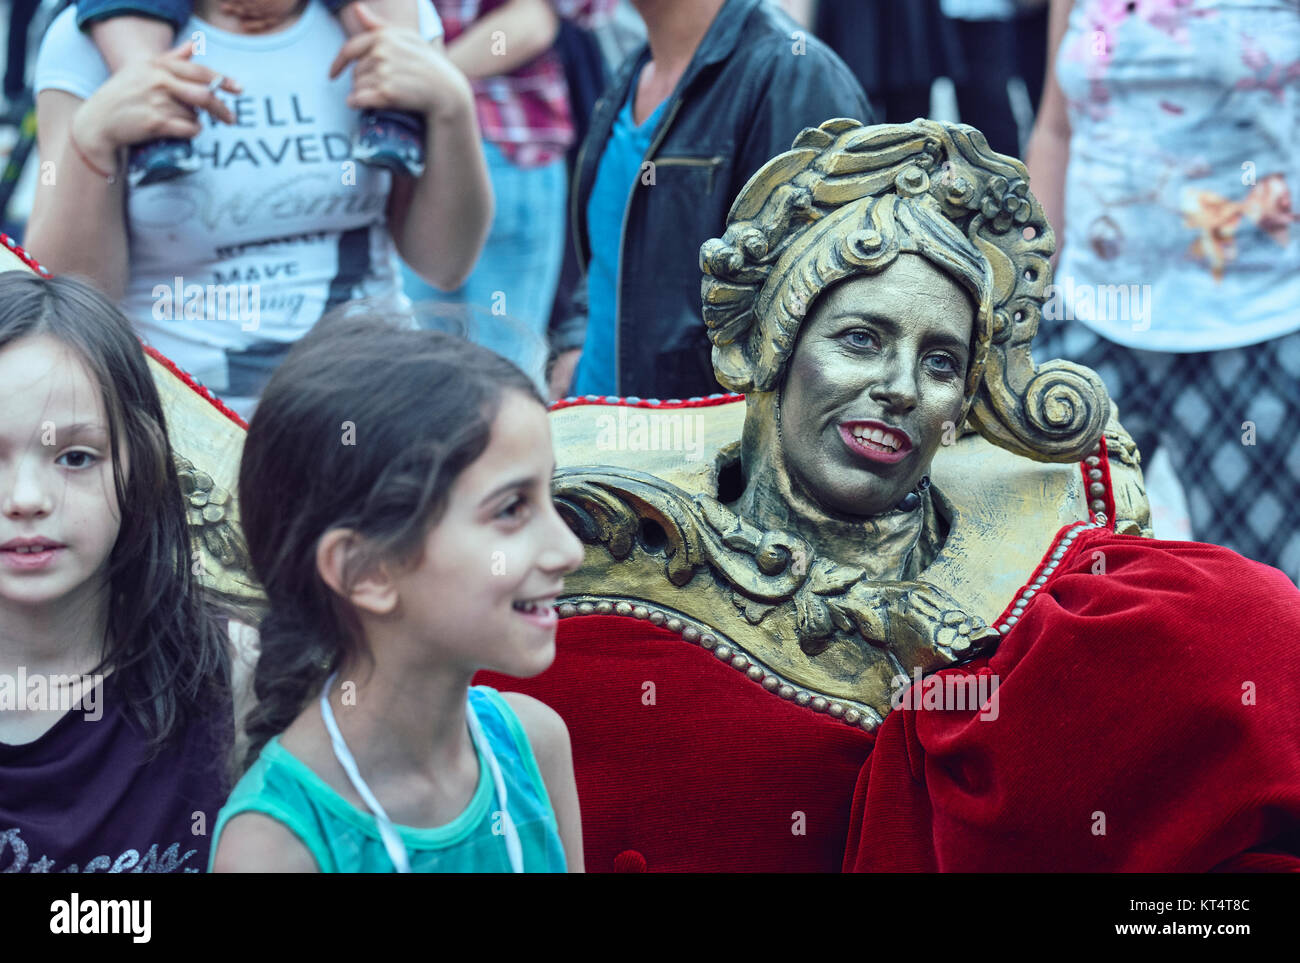 Bucharest, Romania - May 29, 2014: Actress acting as Baroque couch ornament entertains the children throughout The - Stock Image